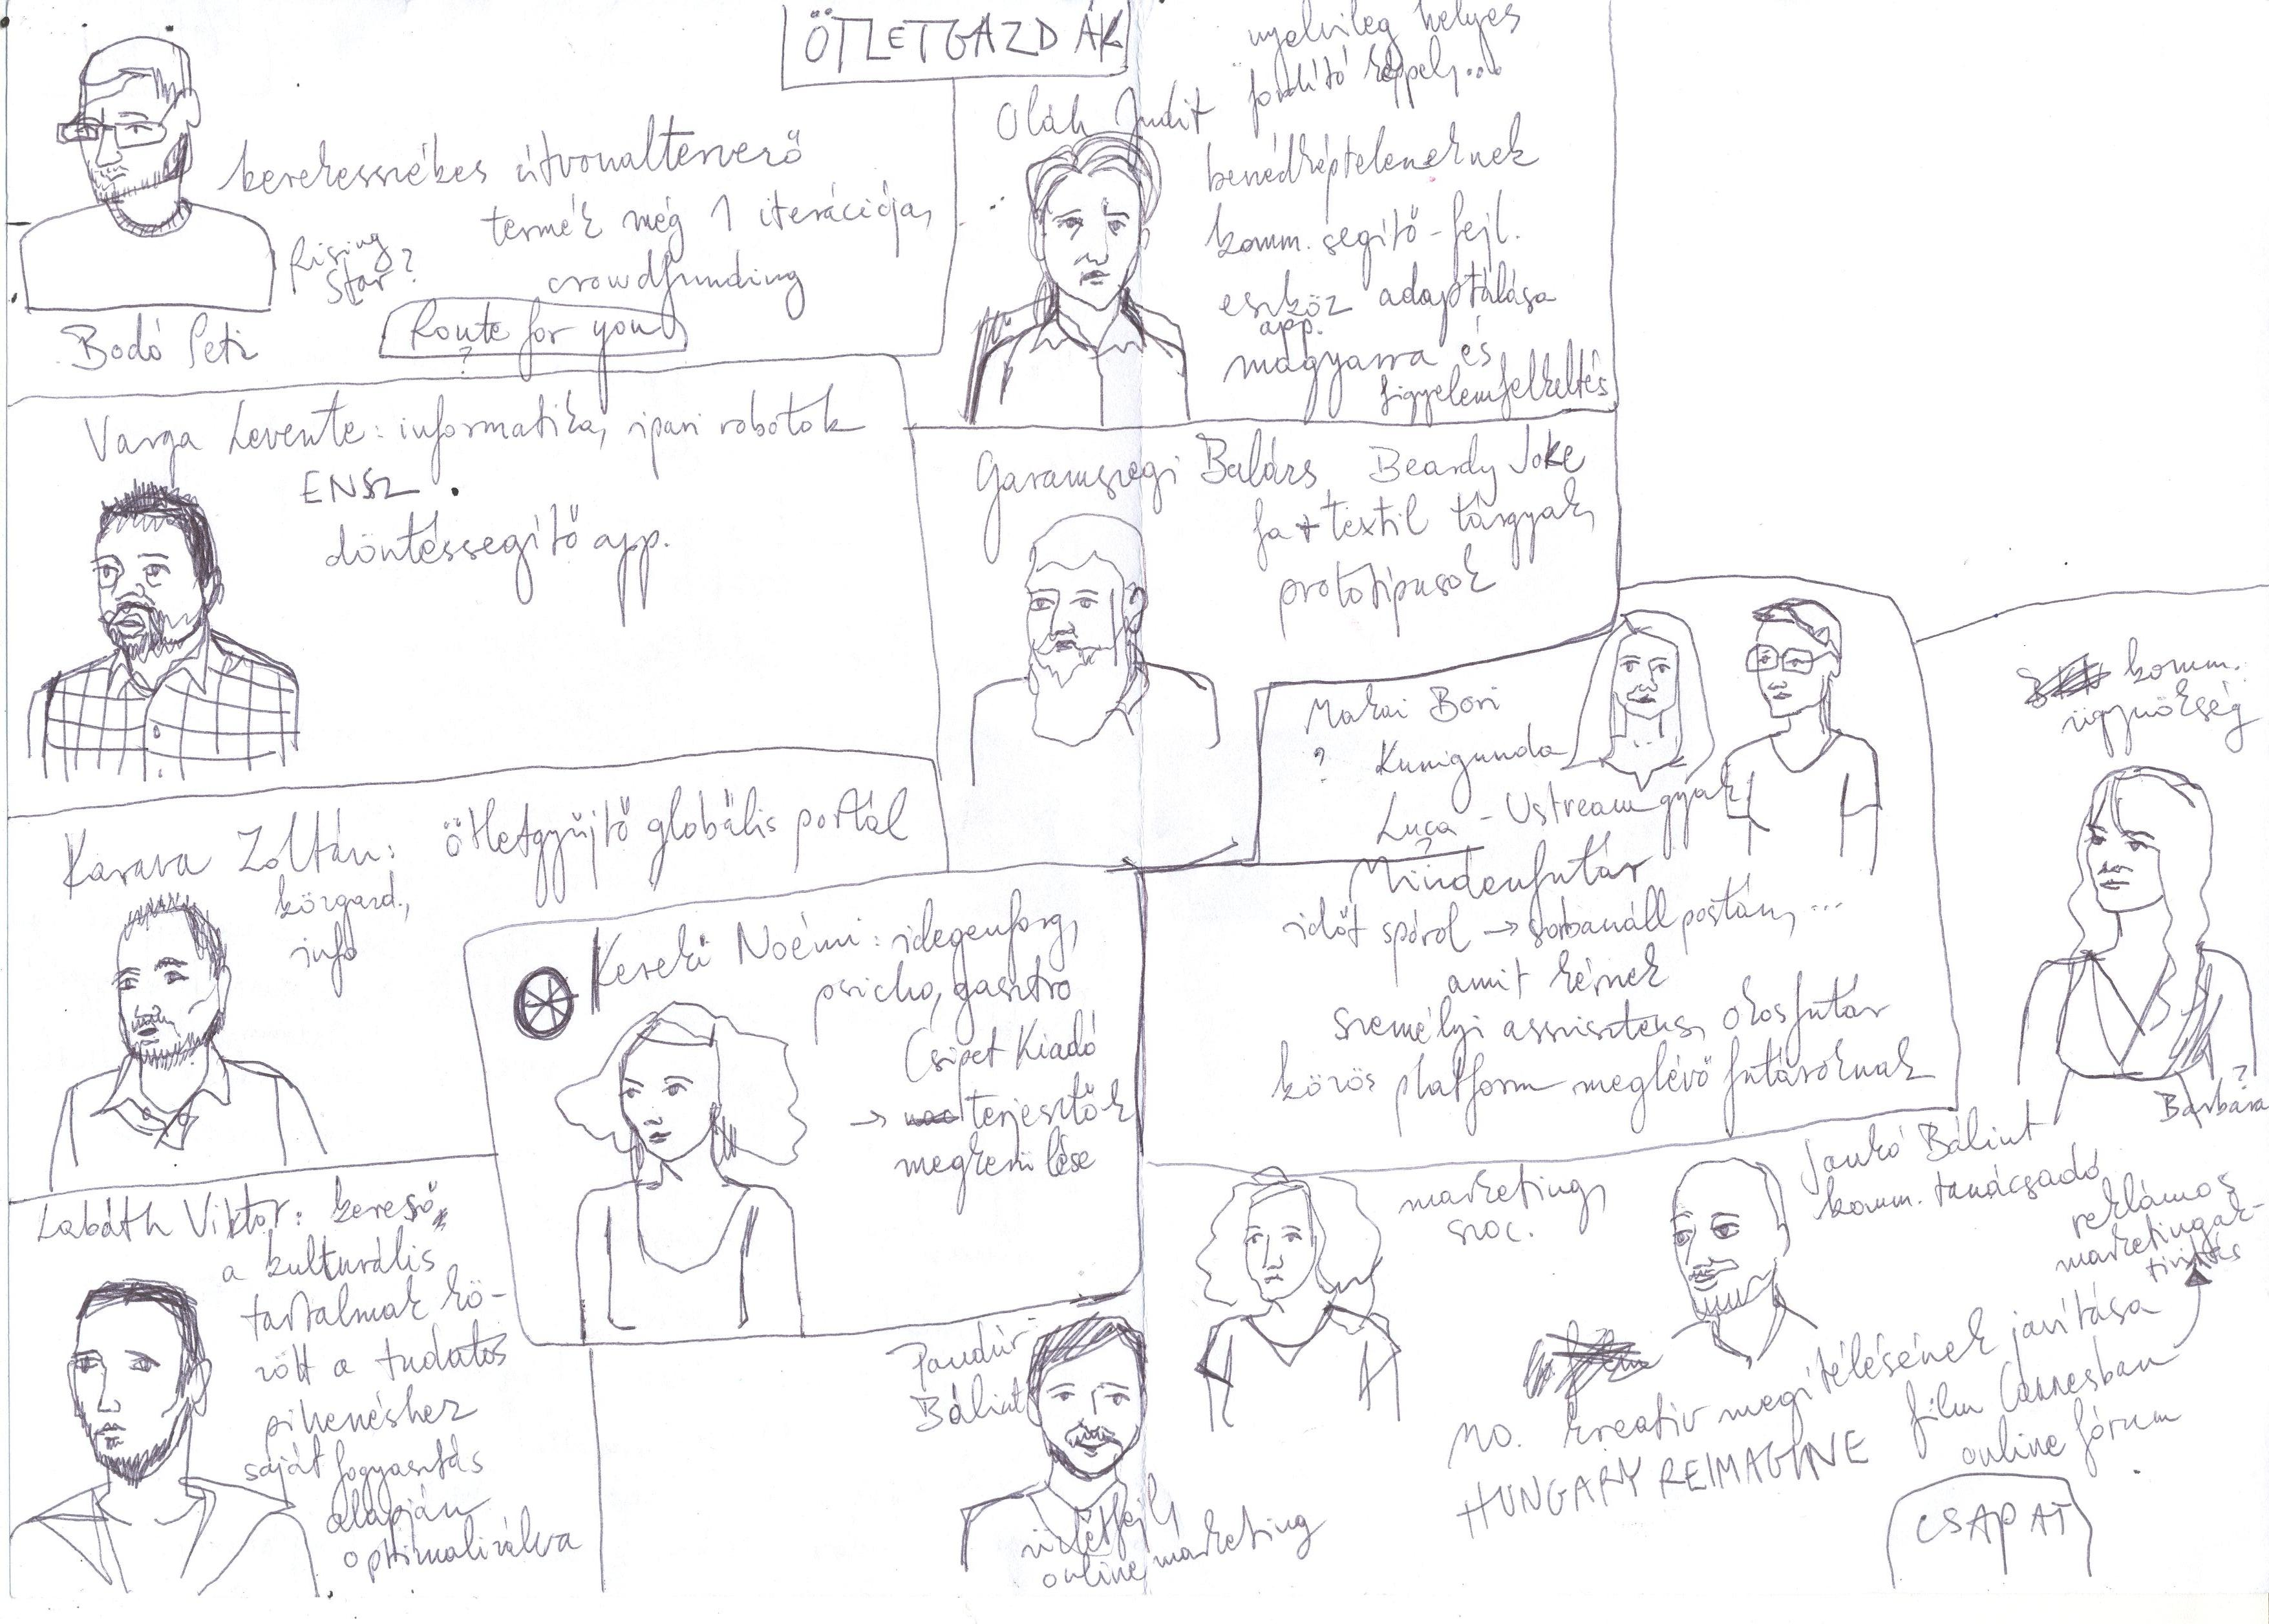 Sketchnotes of Kreater lectures